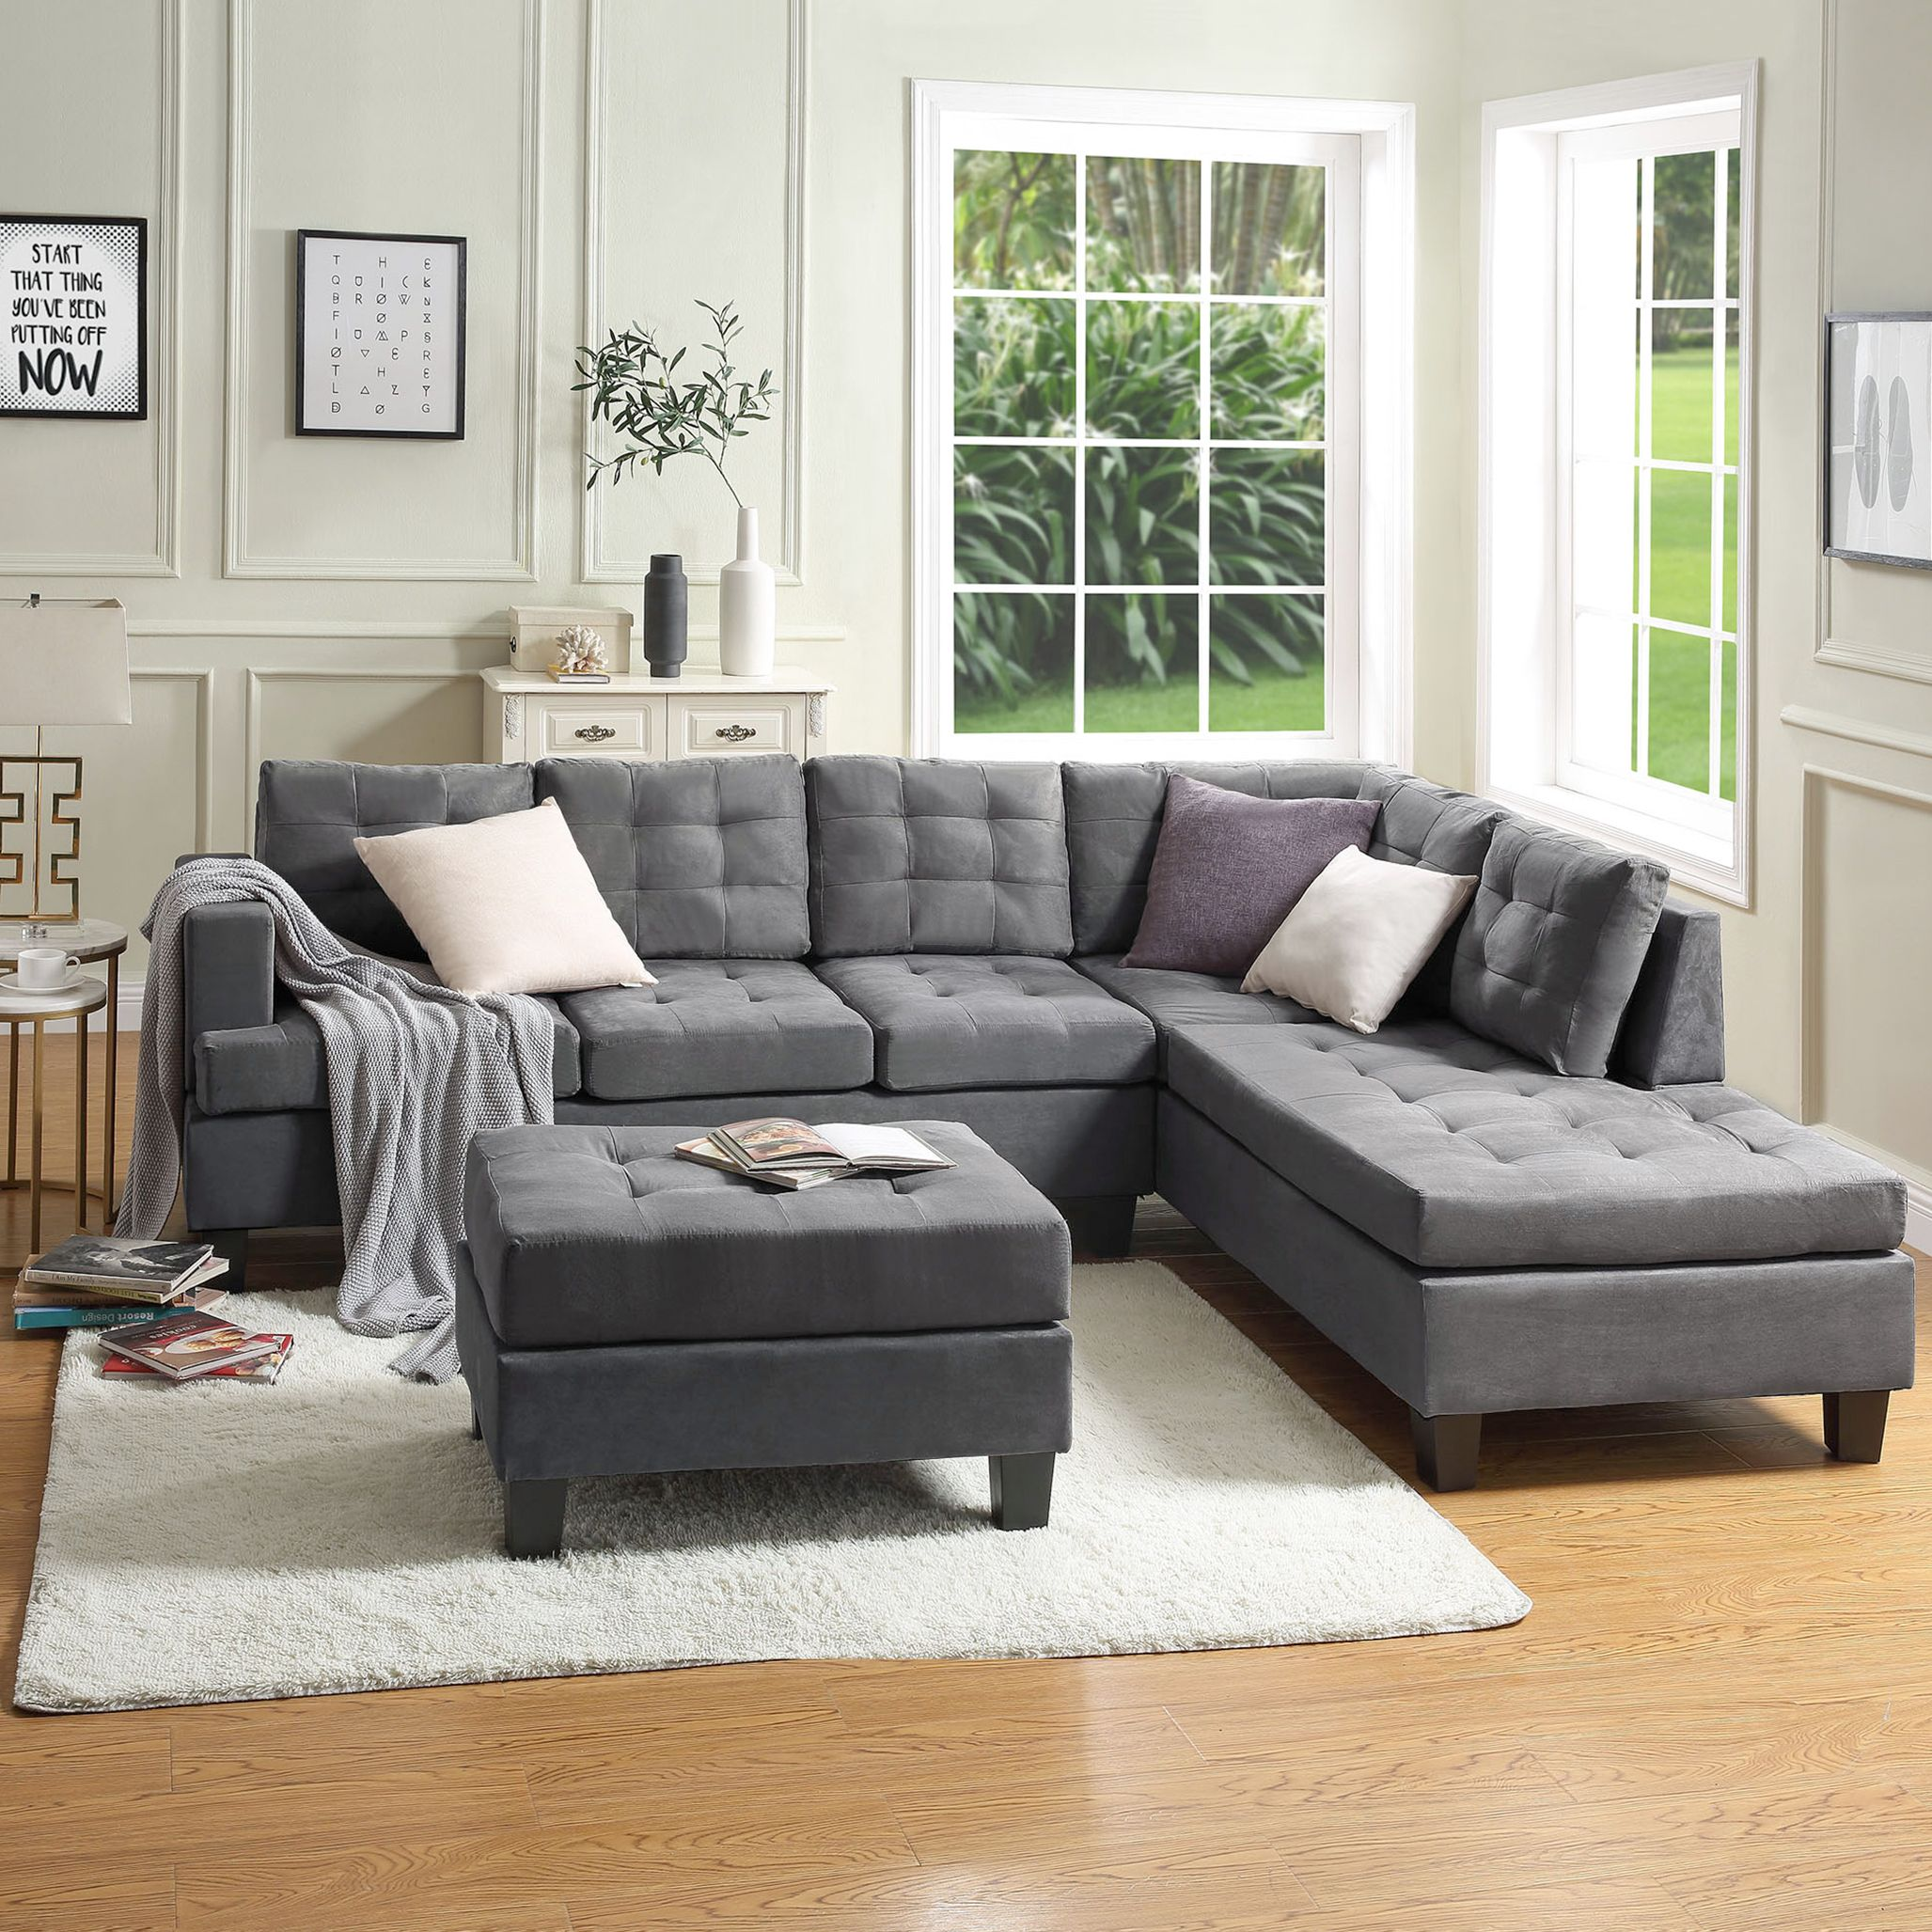 Blue 3 Piece Sectional Sofa With Storage Ottoman For Living Room Segmart Contemporary Couch Thick Cushions Sofa Beds With Solid Wood Frame And Resin Legs For L In 2020 Sectional Sofas Living #sectional #living #room #suit